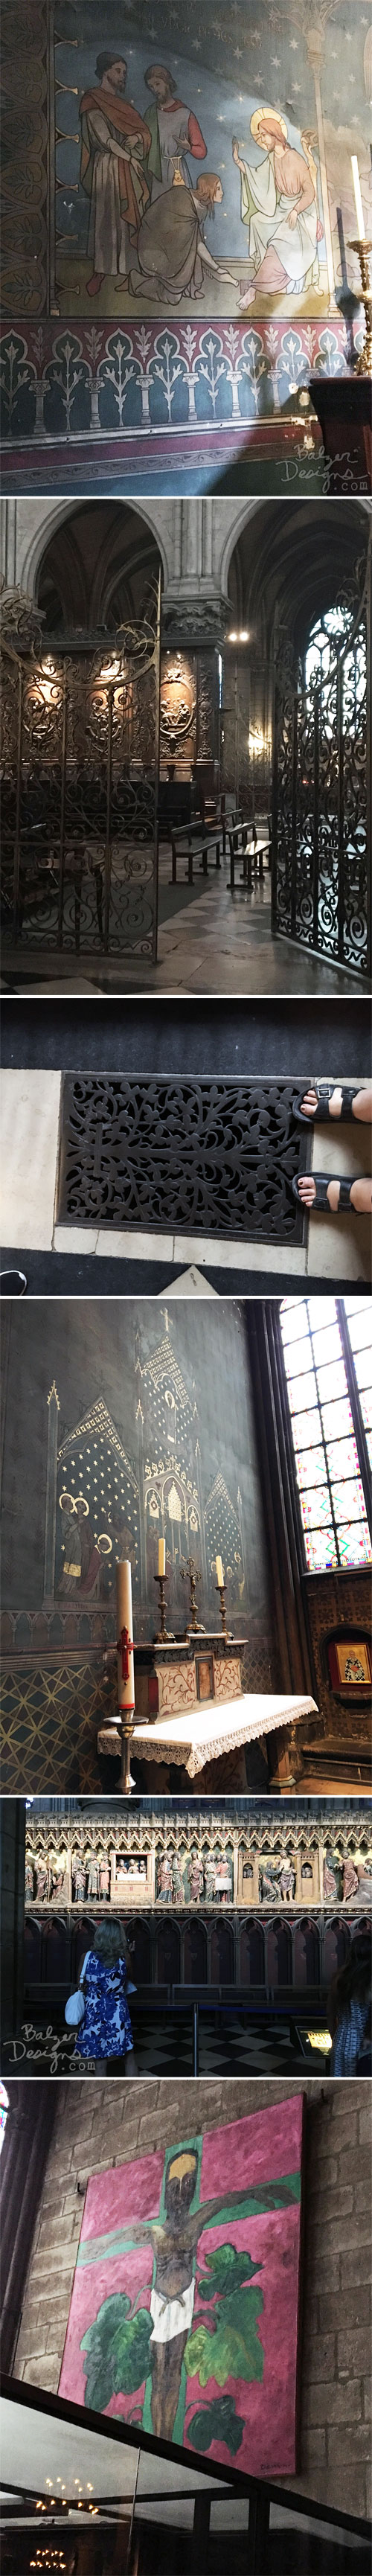 From the Balzer Designs Blog: Notre-Dame